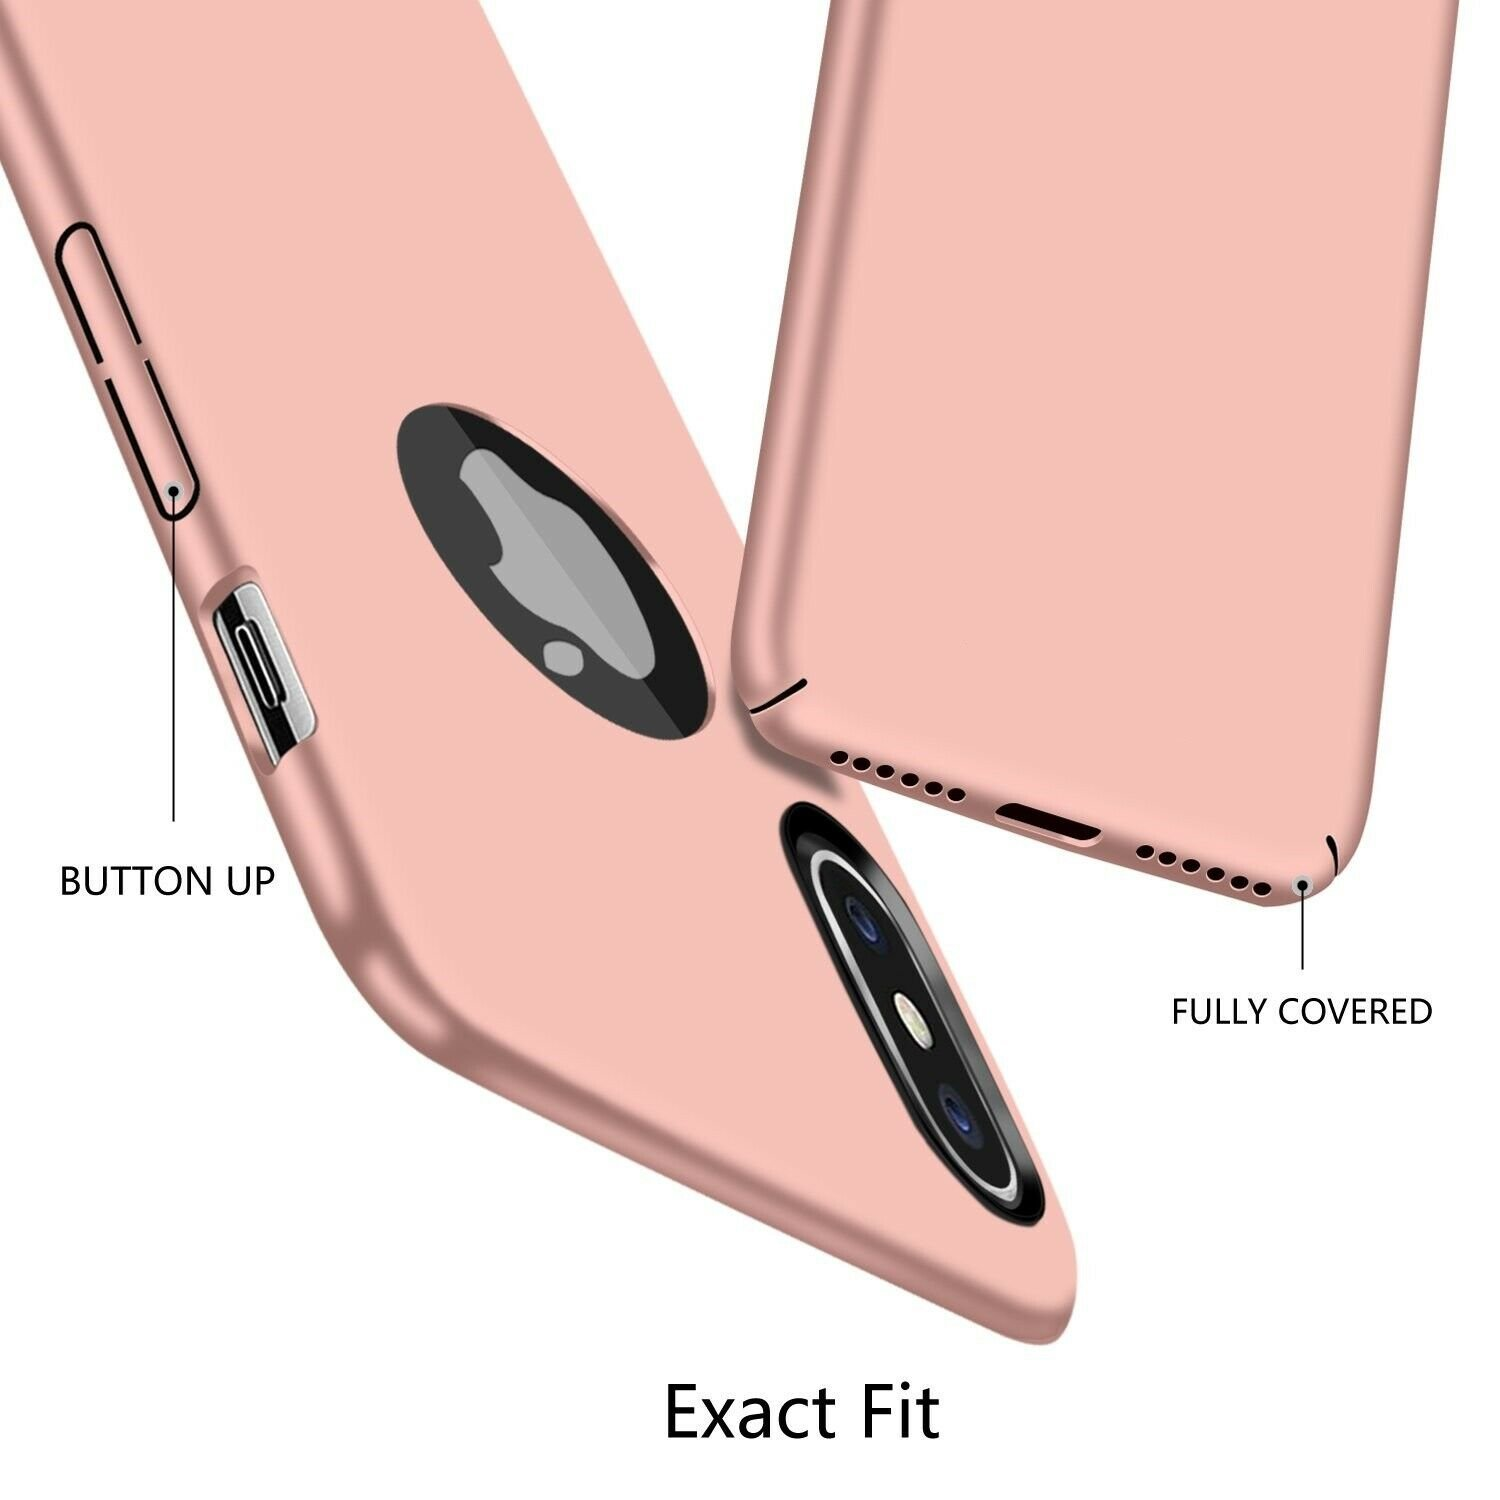 Case-Thin-Hard-Cover-Tempered-Glass-Screen-Protector-For-iPhone-X-XR-XS-Max thumbnail 35